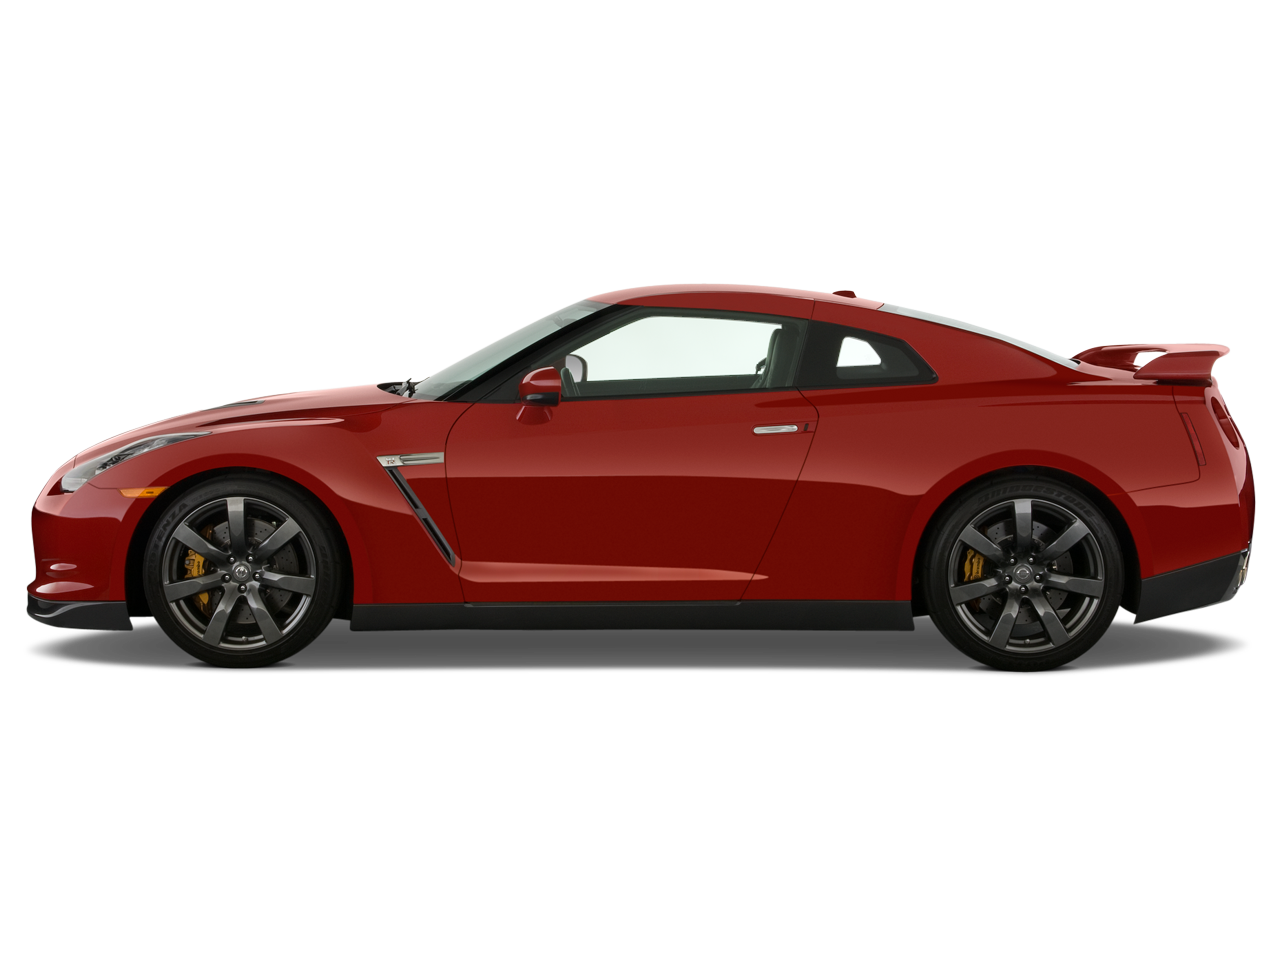 2009 nissan gt r tops list of most expensive cars to insure. Black Bedroom Furniture Sets. Home Design Ideas